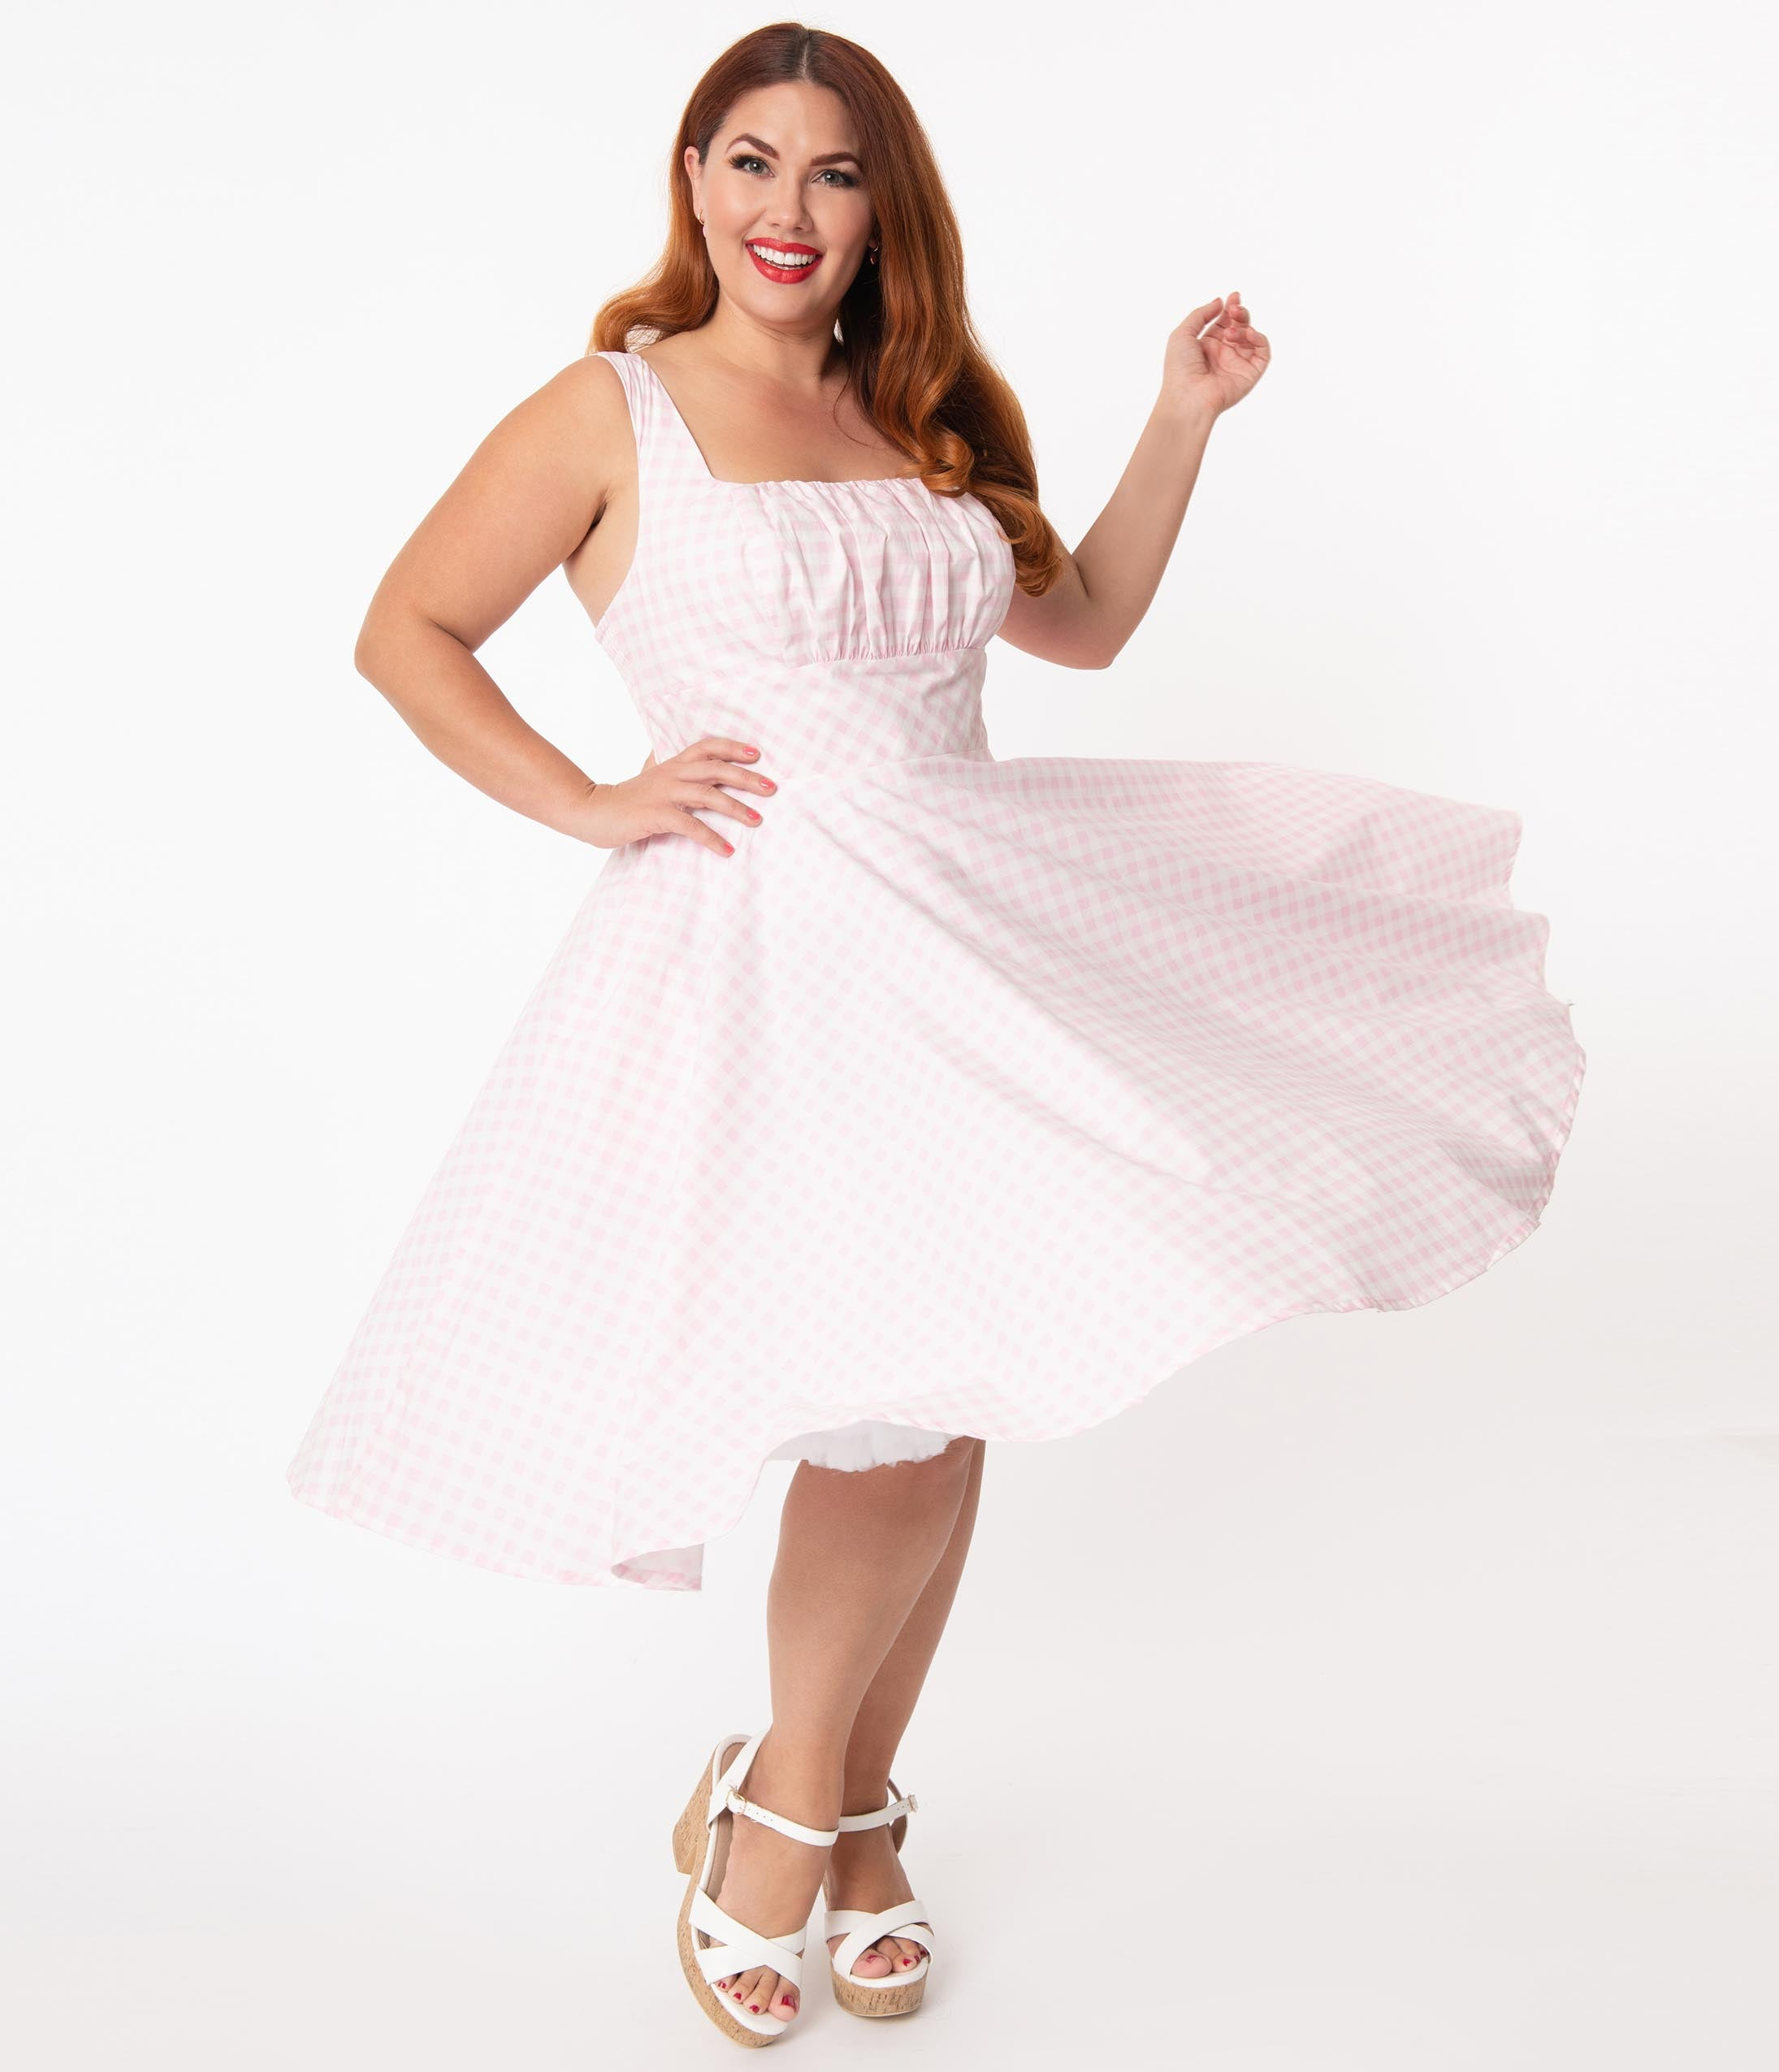 1950s Plus Size Dresses, Swing Dresses Magnolia Place Plus Size Light Pink  White Gingham Amelia Swing Dress $78.00 AT vintagedancer.com